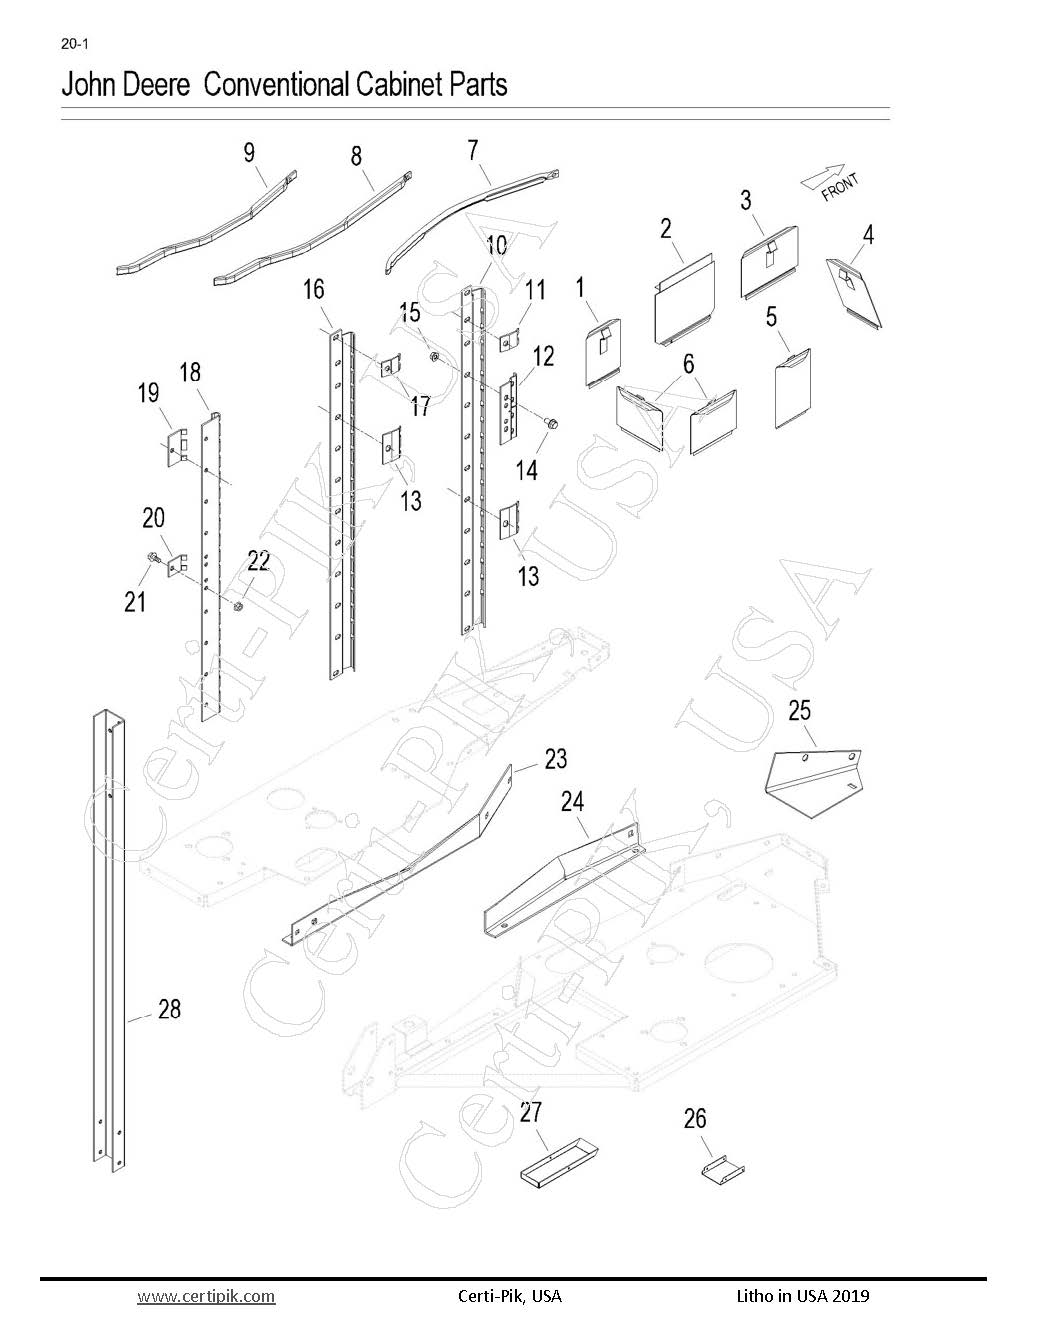 John Deere Conventional, Cabinet Parts